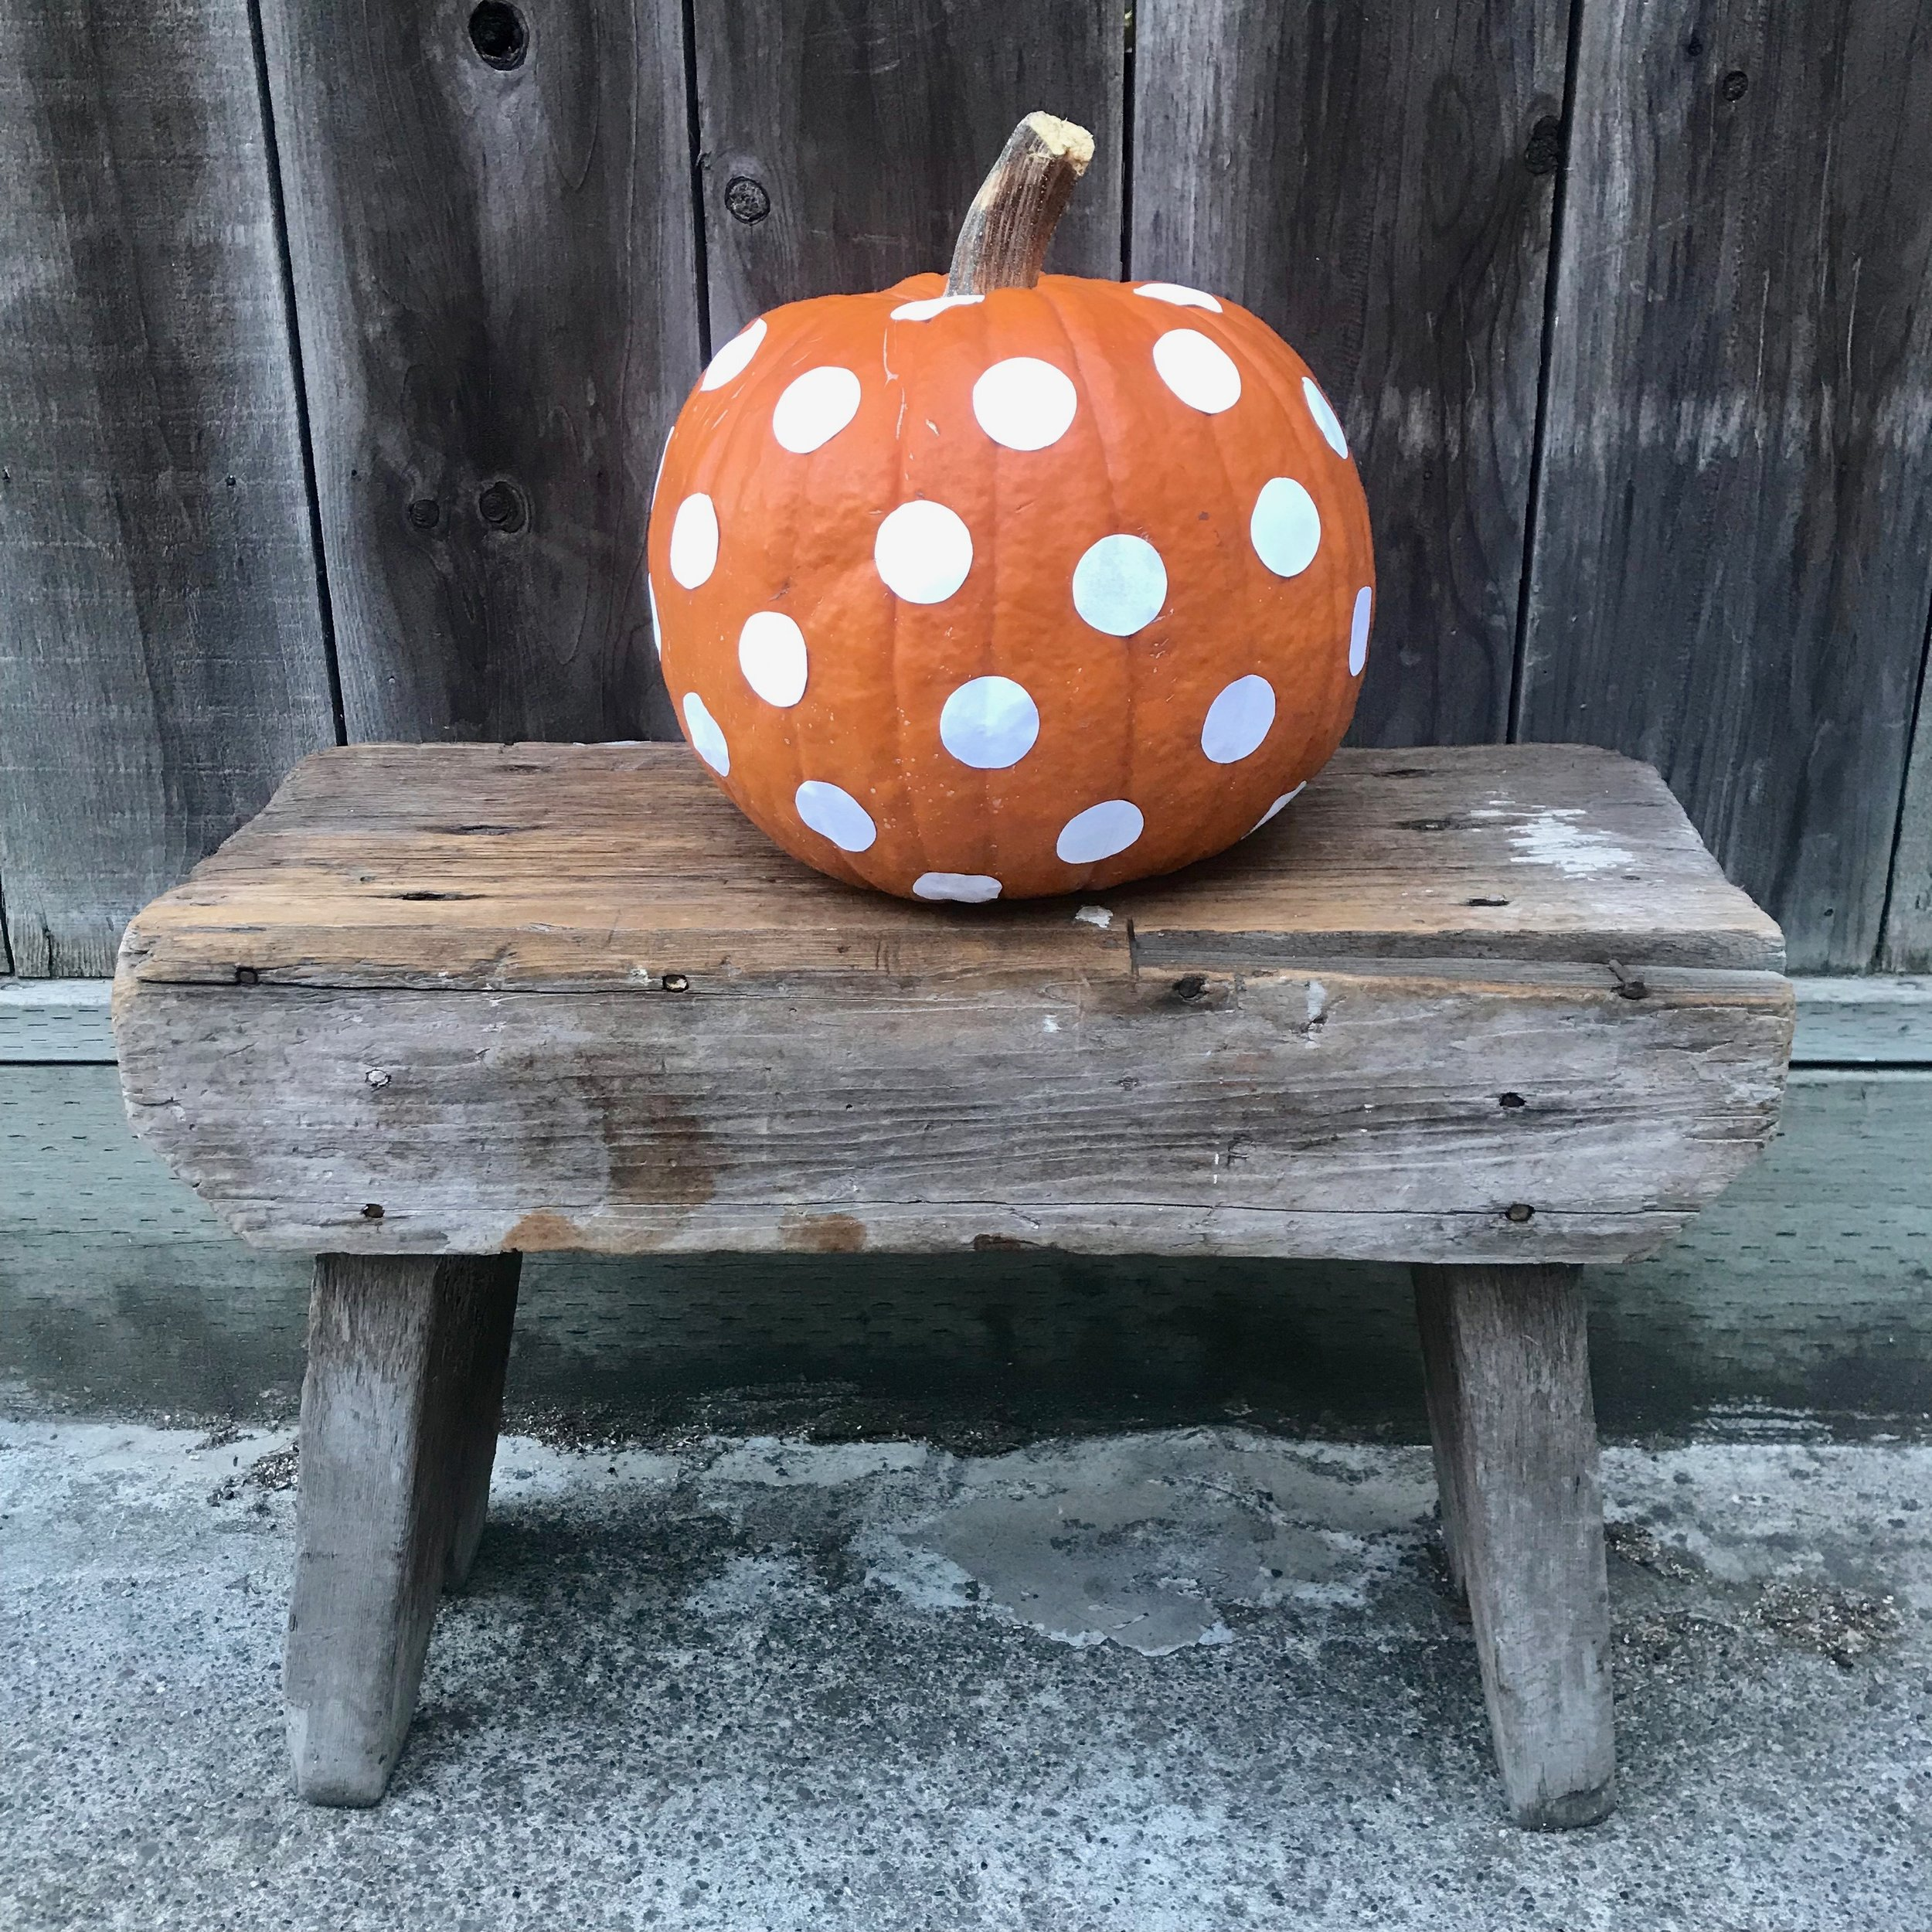 Day 302. Polka Dotted Pumpkin